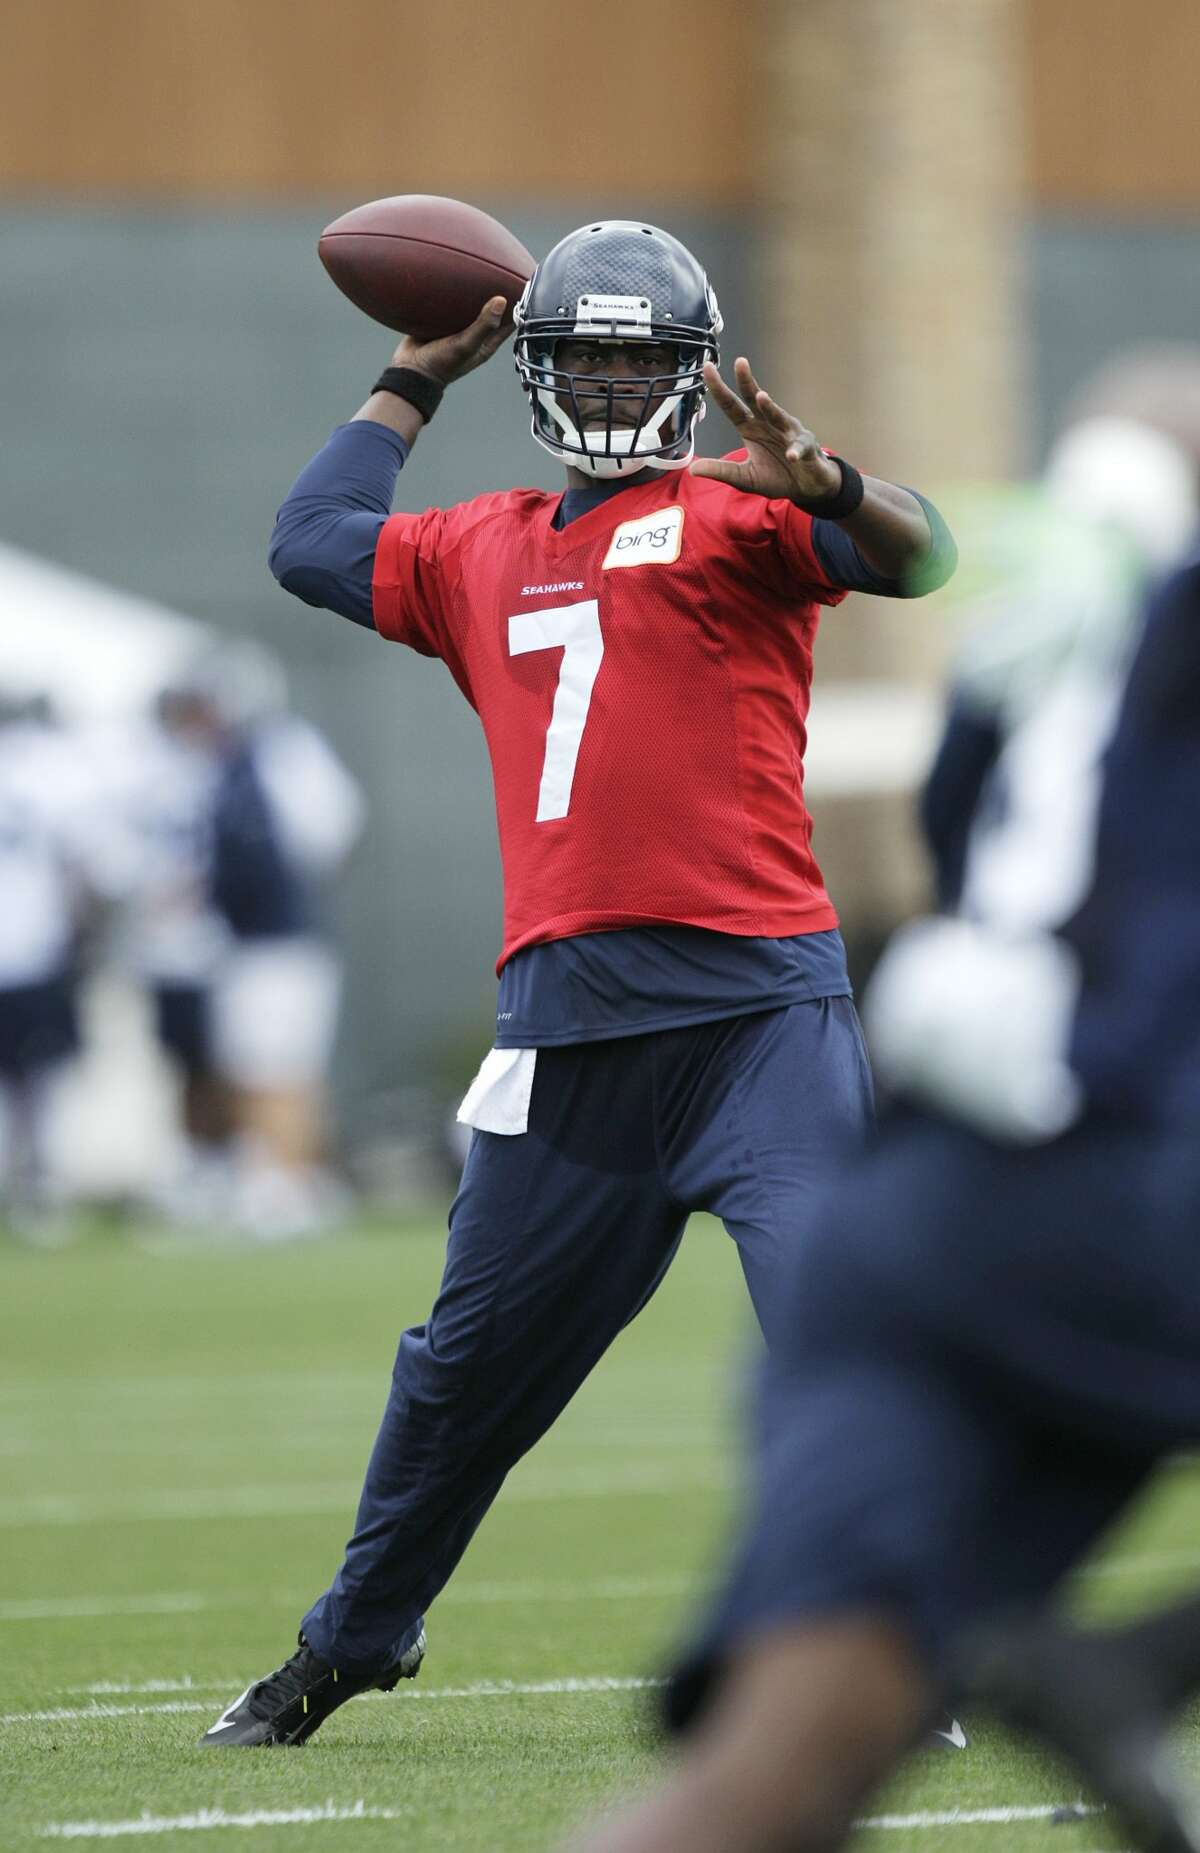 Seattle Seahawks quarterback Tavaris Jackson passes Saturday, July 28, 2012, on the first day of Seattle Seahawks NFL football training camp in Renton, Wash. (AP Photo/Ted S. Warren) (AP)